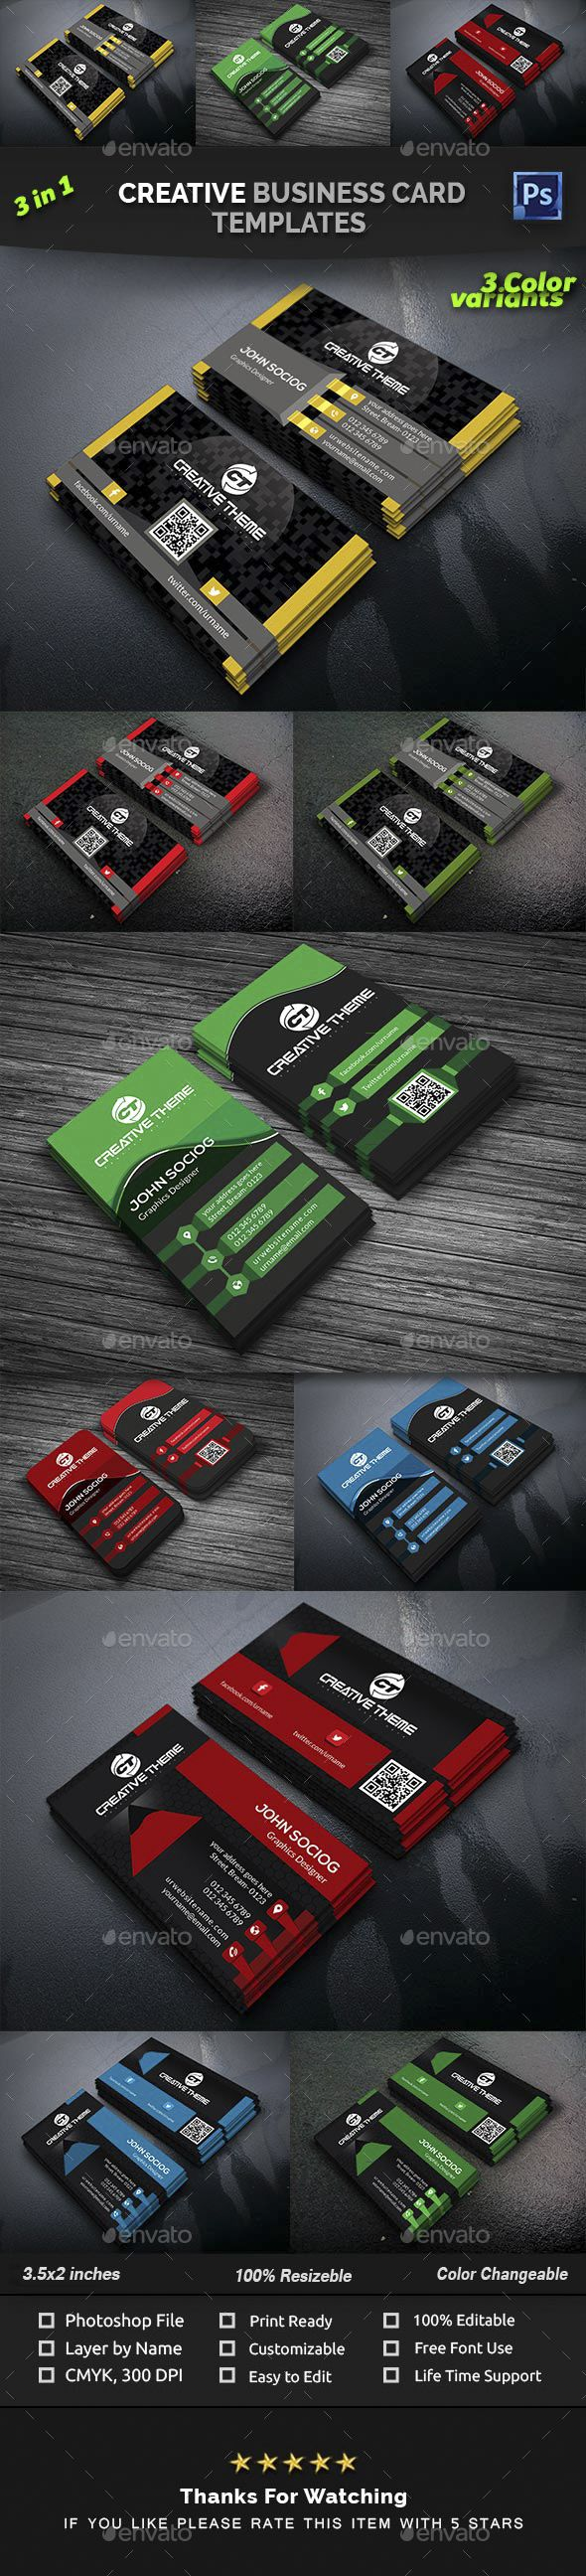 Creative business card templates creative business cards 3 in 1 creative business card templates creative business cards 3 in 1 bundle business card business card bundle card clean creative design designer reheart Images